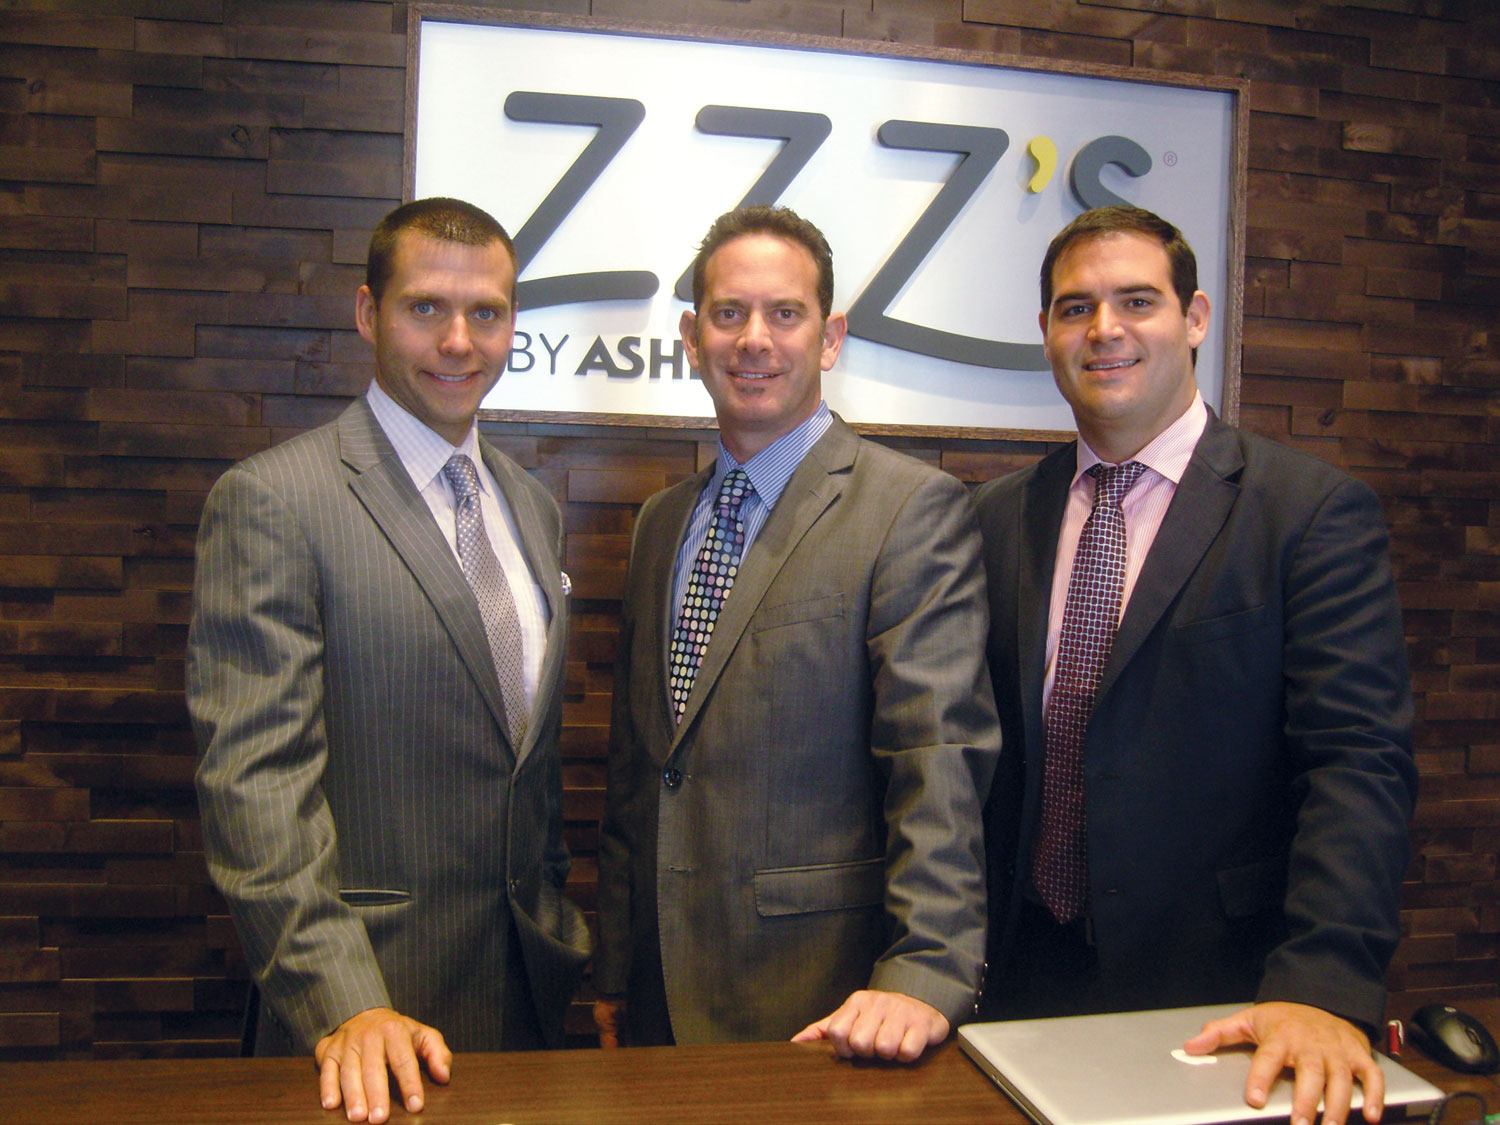 ZZZ's by Ashley executives Ben Thorud, left, Graeme Gordon and Andrew Disa stand inside the entrance to the new ZZZ's store.